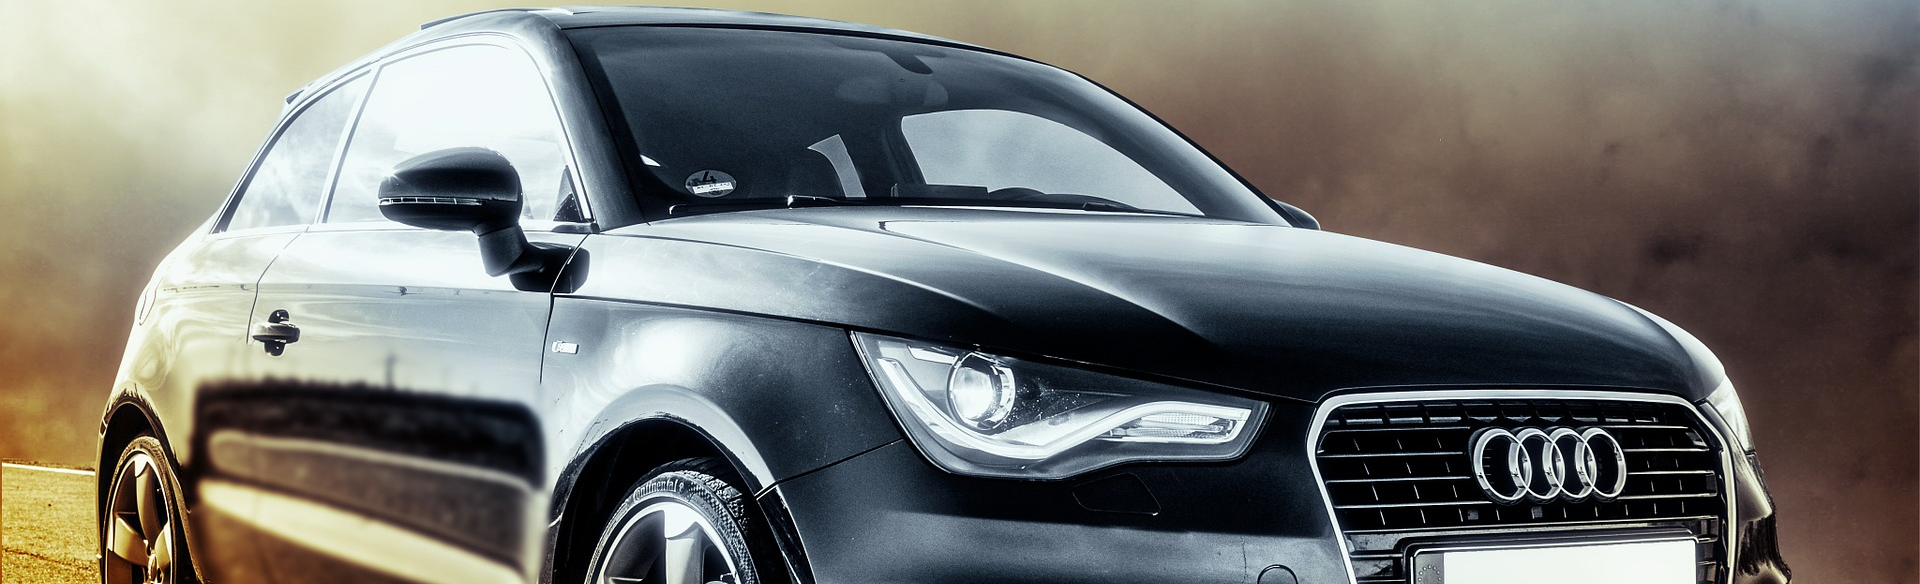 Audi Oil Change, repair and scheduled Maintenance in Norwood, MA